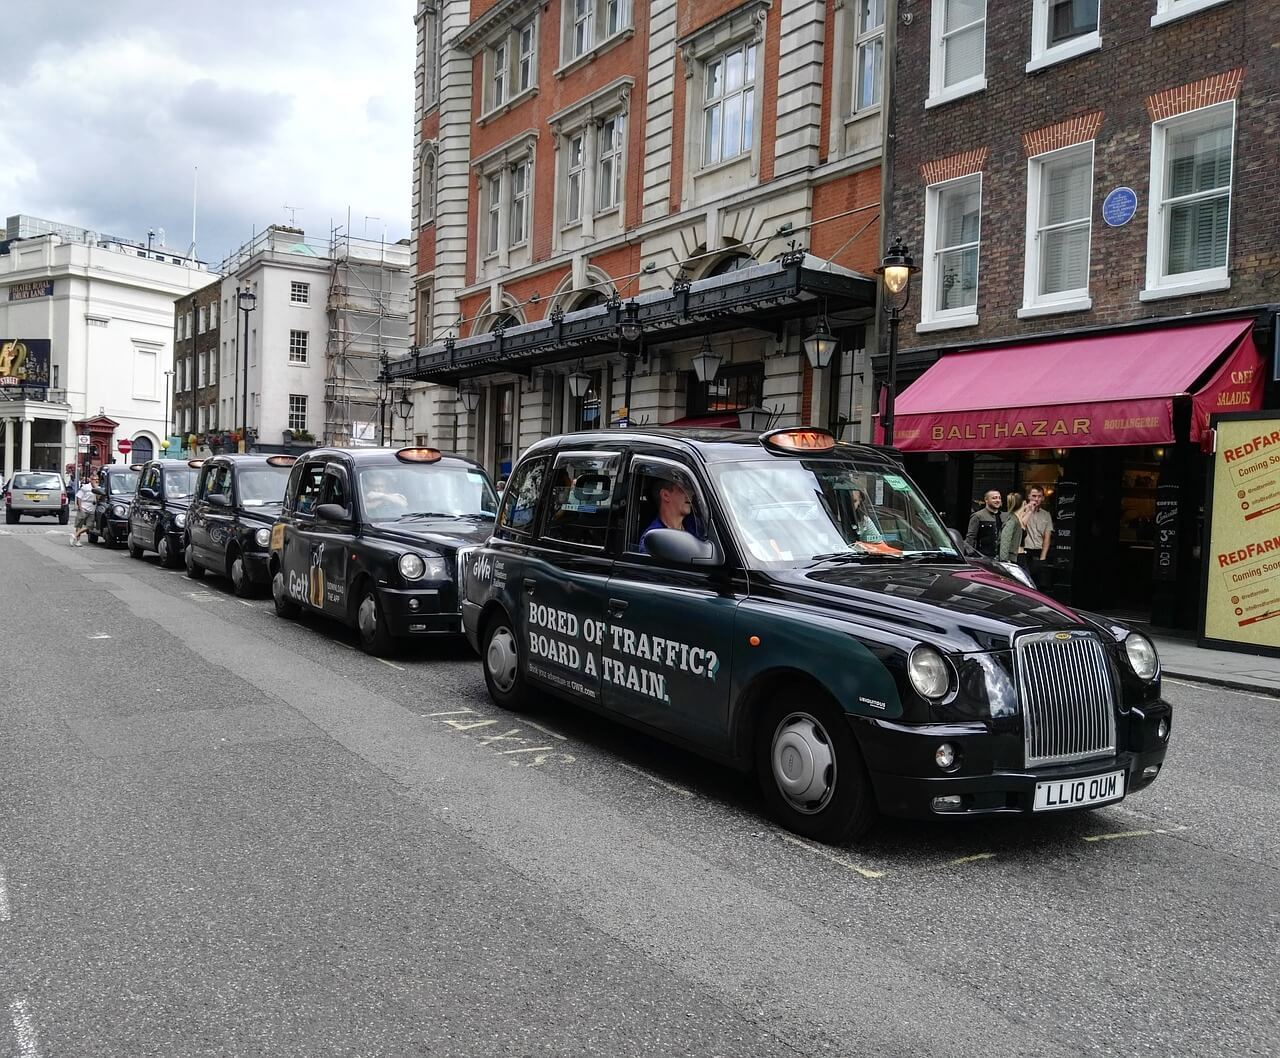 Are taxis safe in London